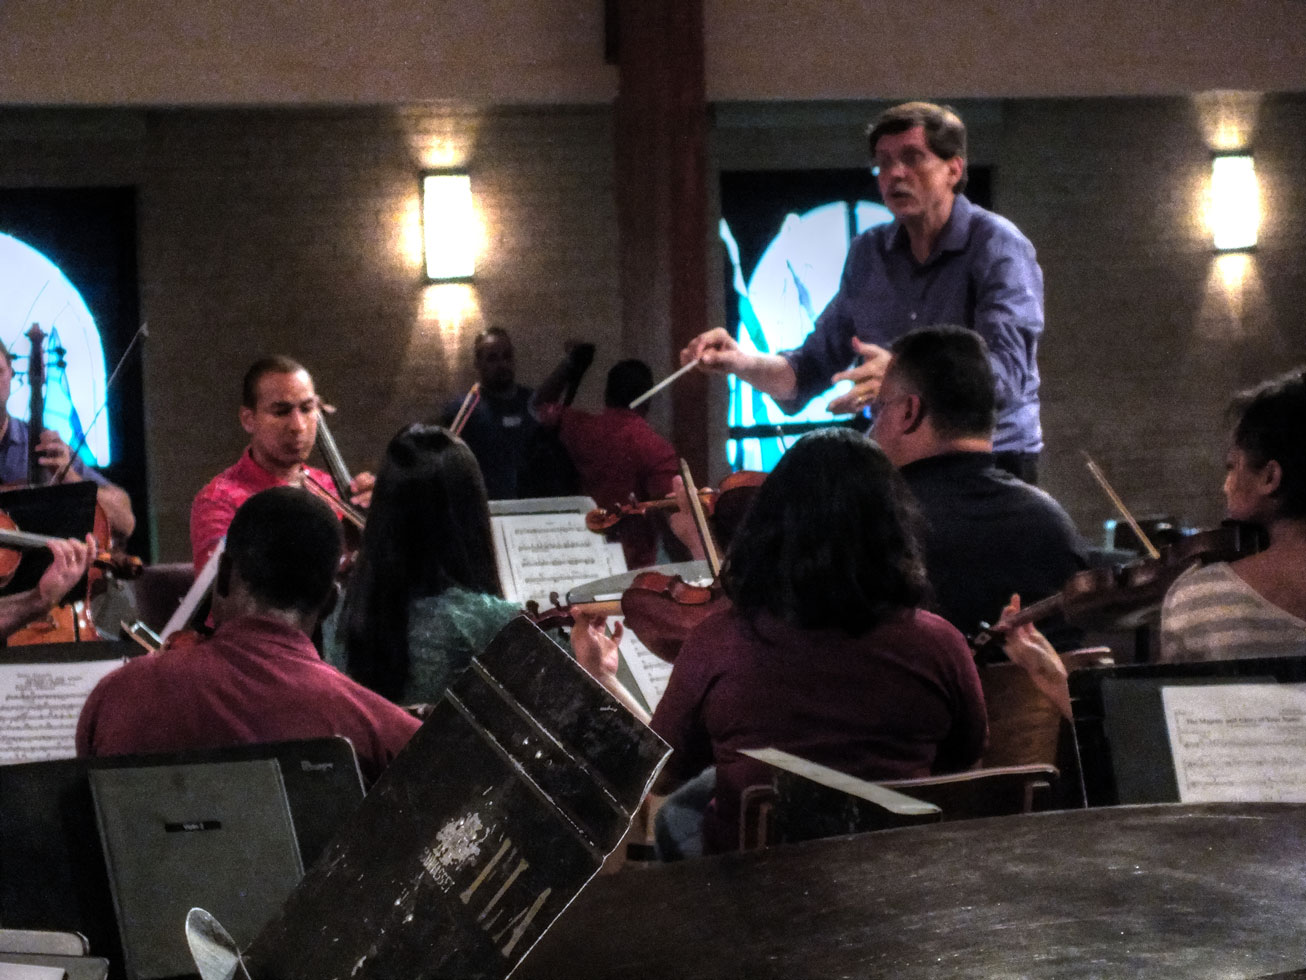 Leon Hauck works with the string section on the Adagio in G Minor, at Forest Lake Church on Oct. 5